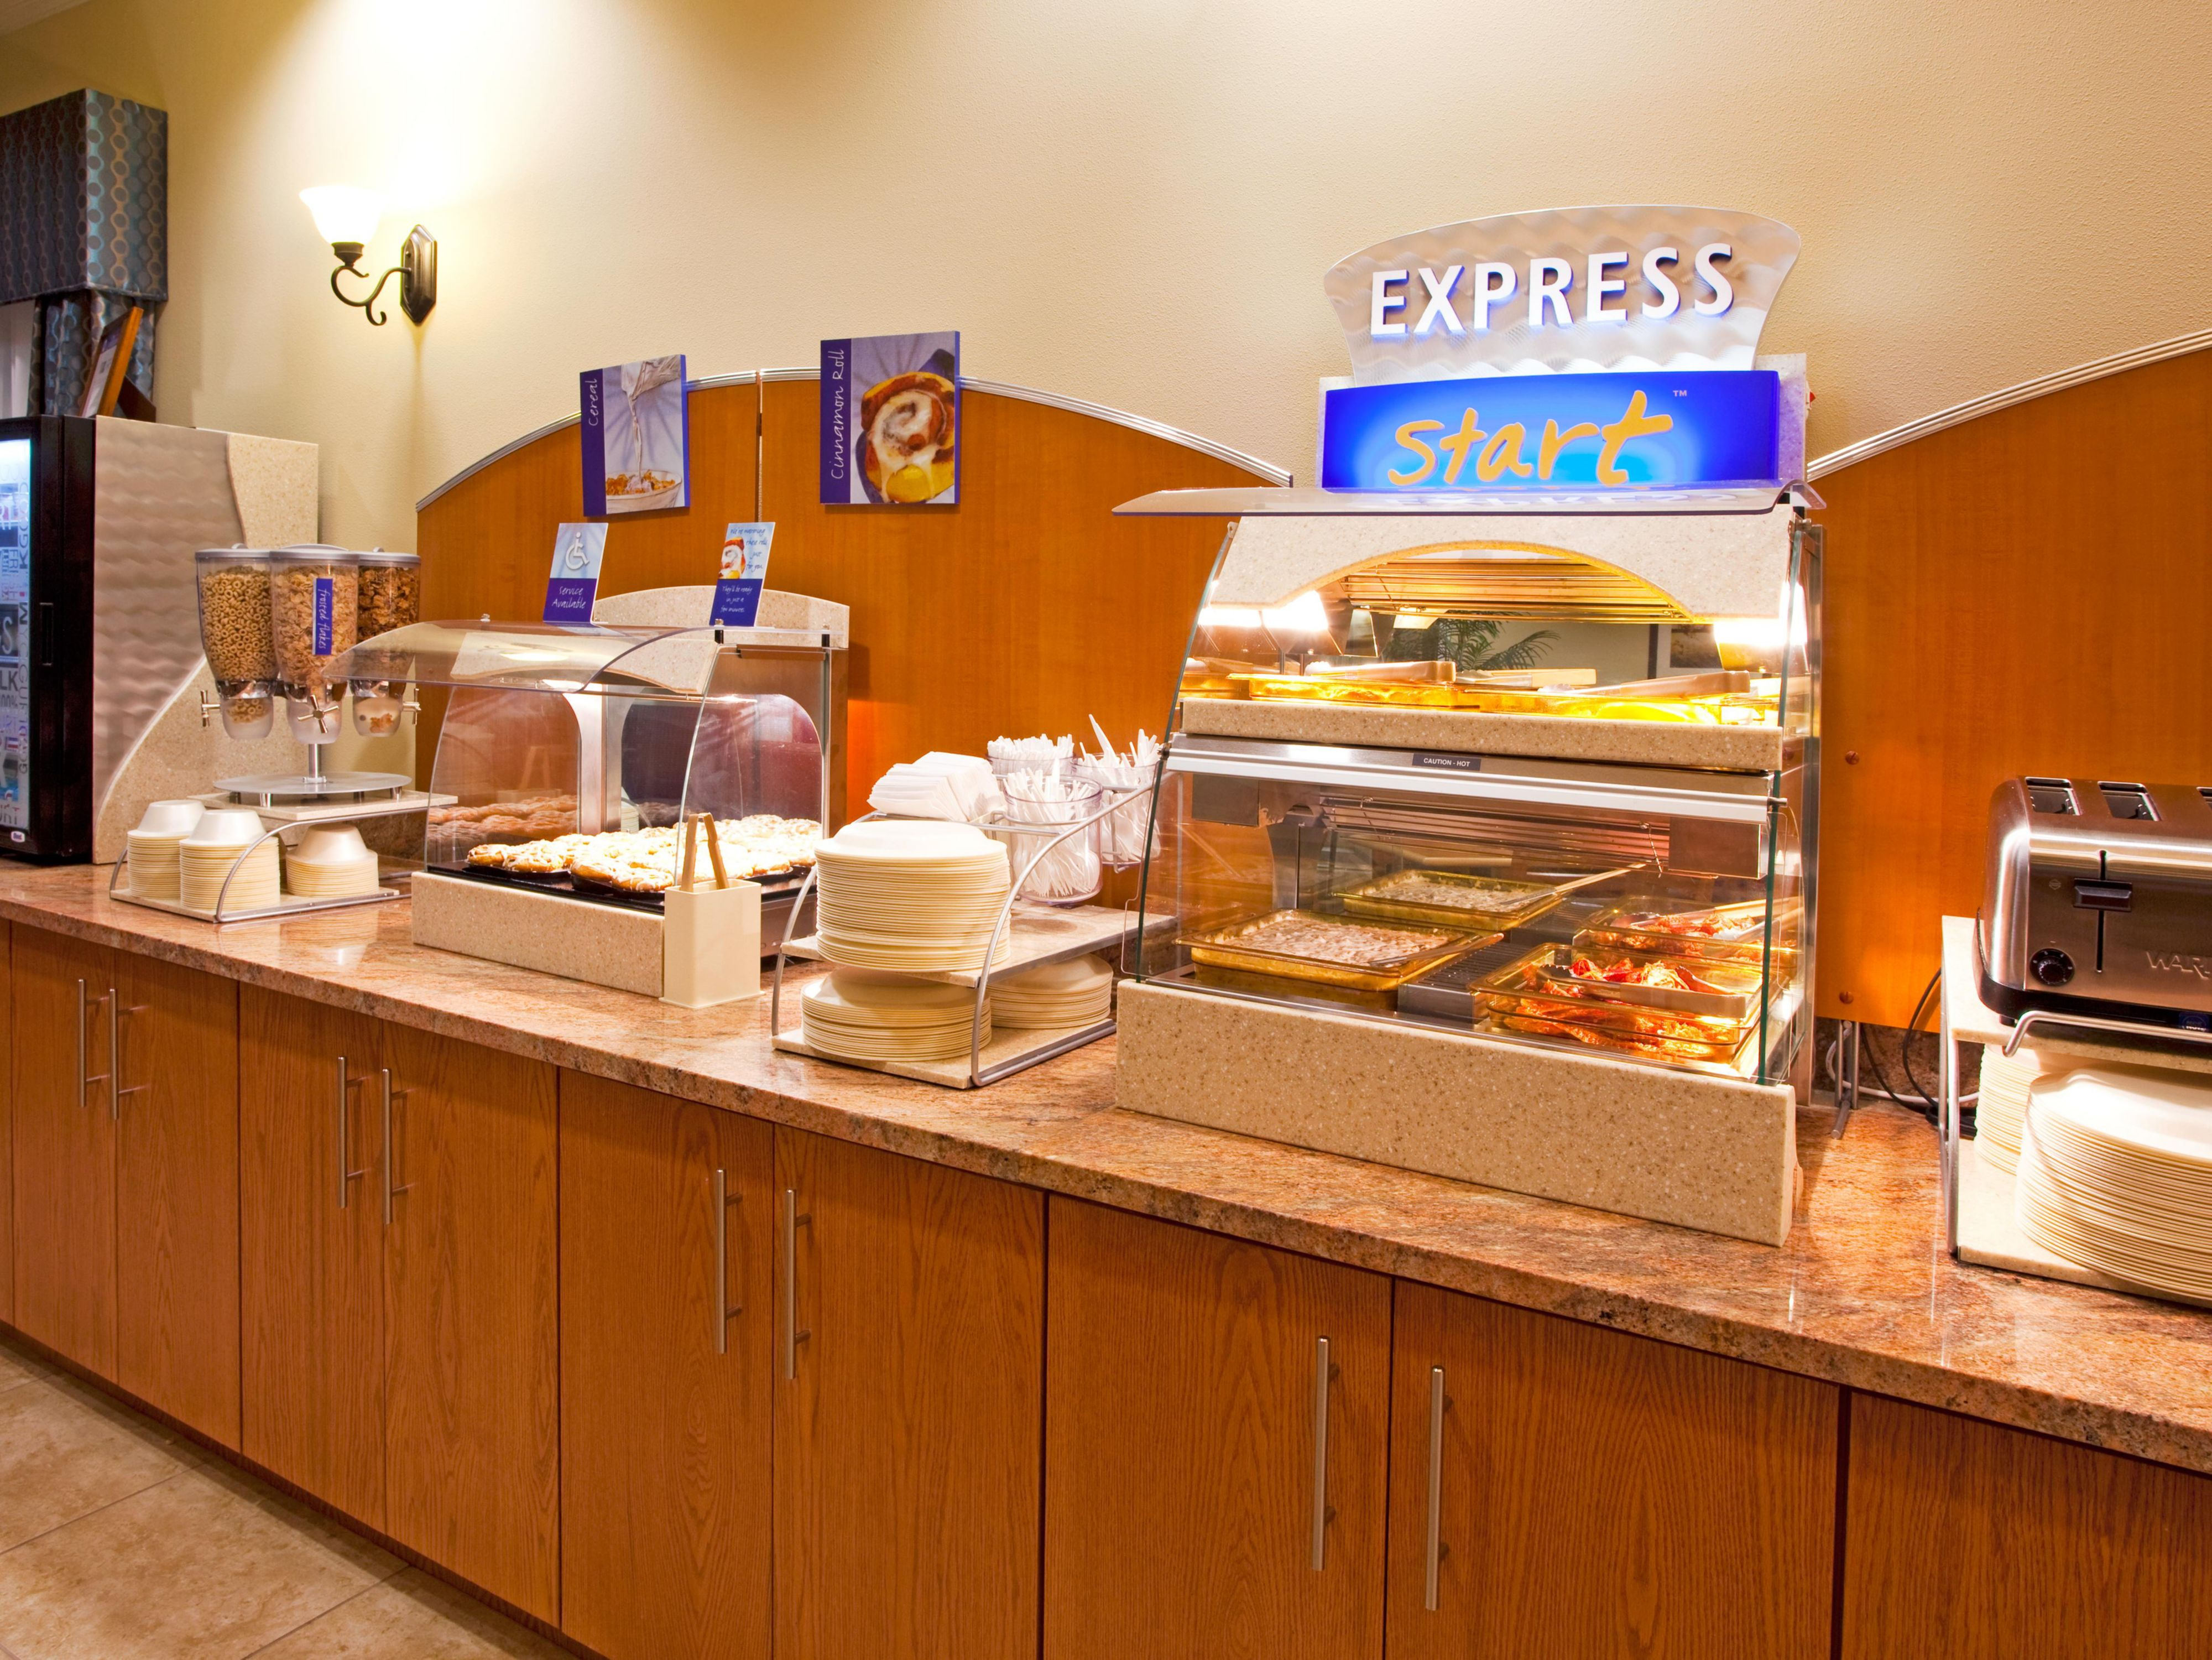 Holiday Inn Express and Suites of Valdosta, Gerogia Breakfast Bar